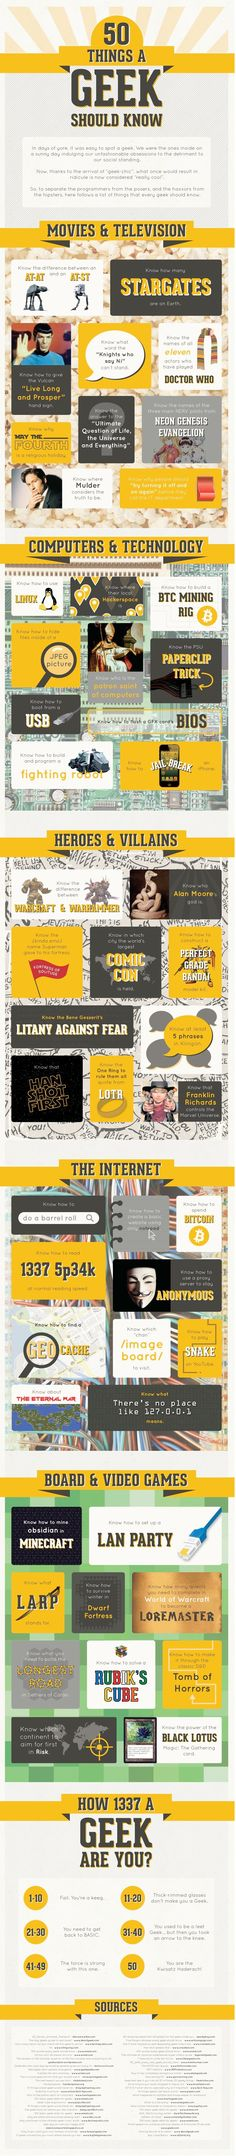 The Ultimate Geek Test: 50 Things Every Nerd Should Know  - http://dashburst.com/infographic/ultimate-geek-test/